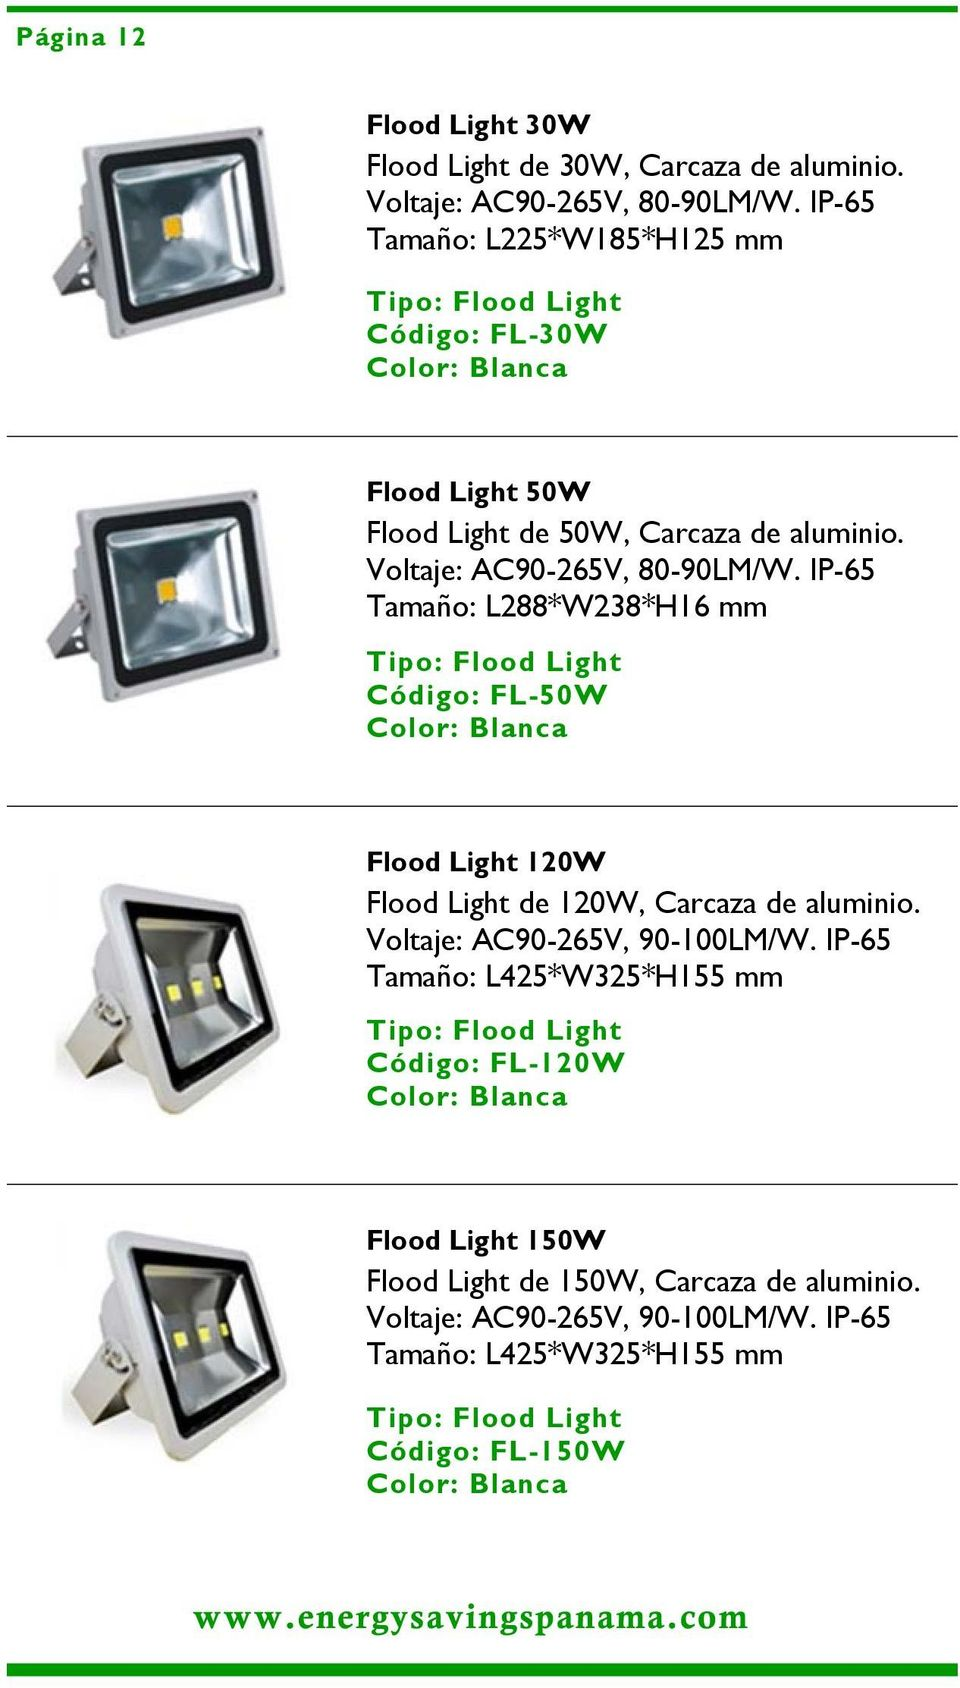 IP-65 Tamaño: L288*W238*H16 mm Tipo: Flood Light Código: FL-50W Flood Light 120W Flood Light de 120W, Carcaza de aluminio. Voltaje: AC90-265V, 90-100LM/W.